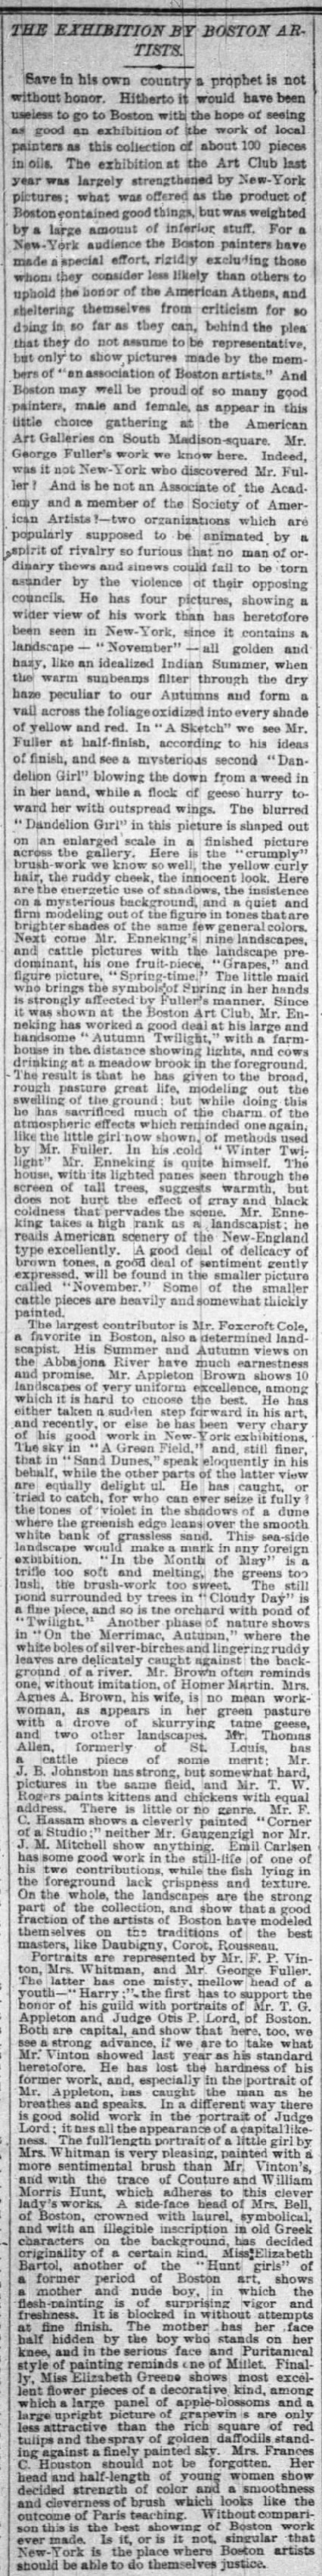 "The New York Times, New York, NY, ""The Exhibition by Boston Artists."", Saturday, January 13, 1883, page 5, not illustrated."